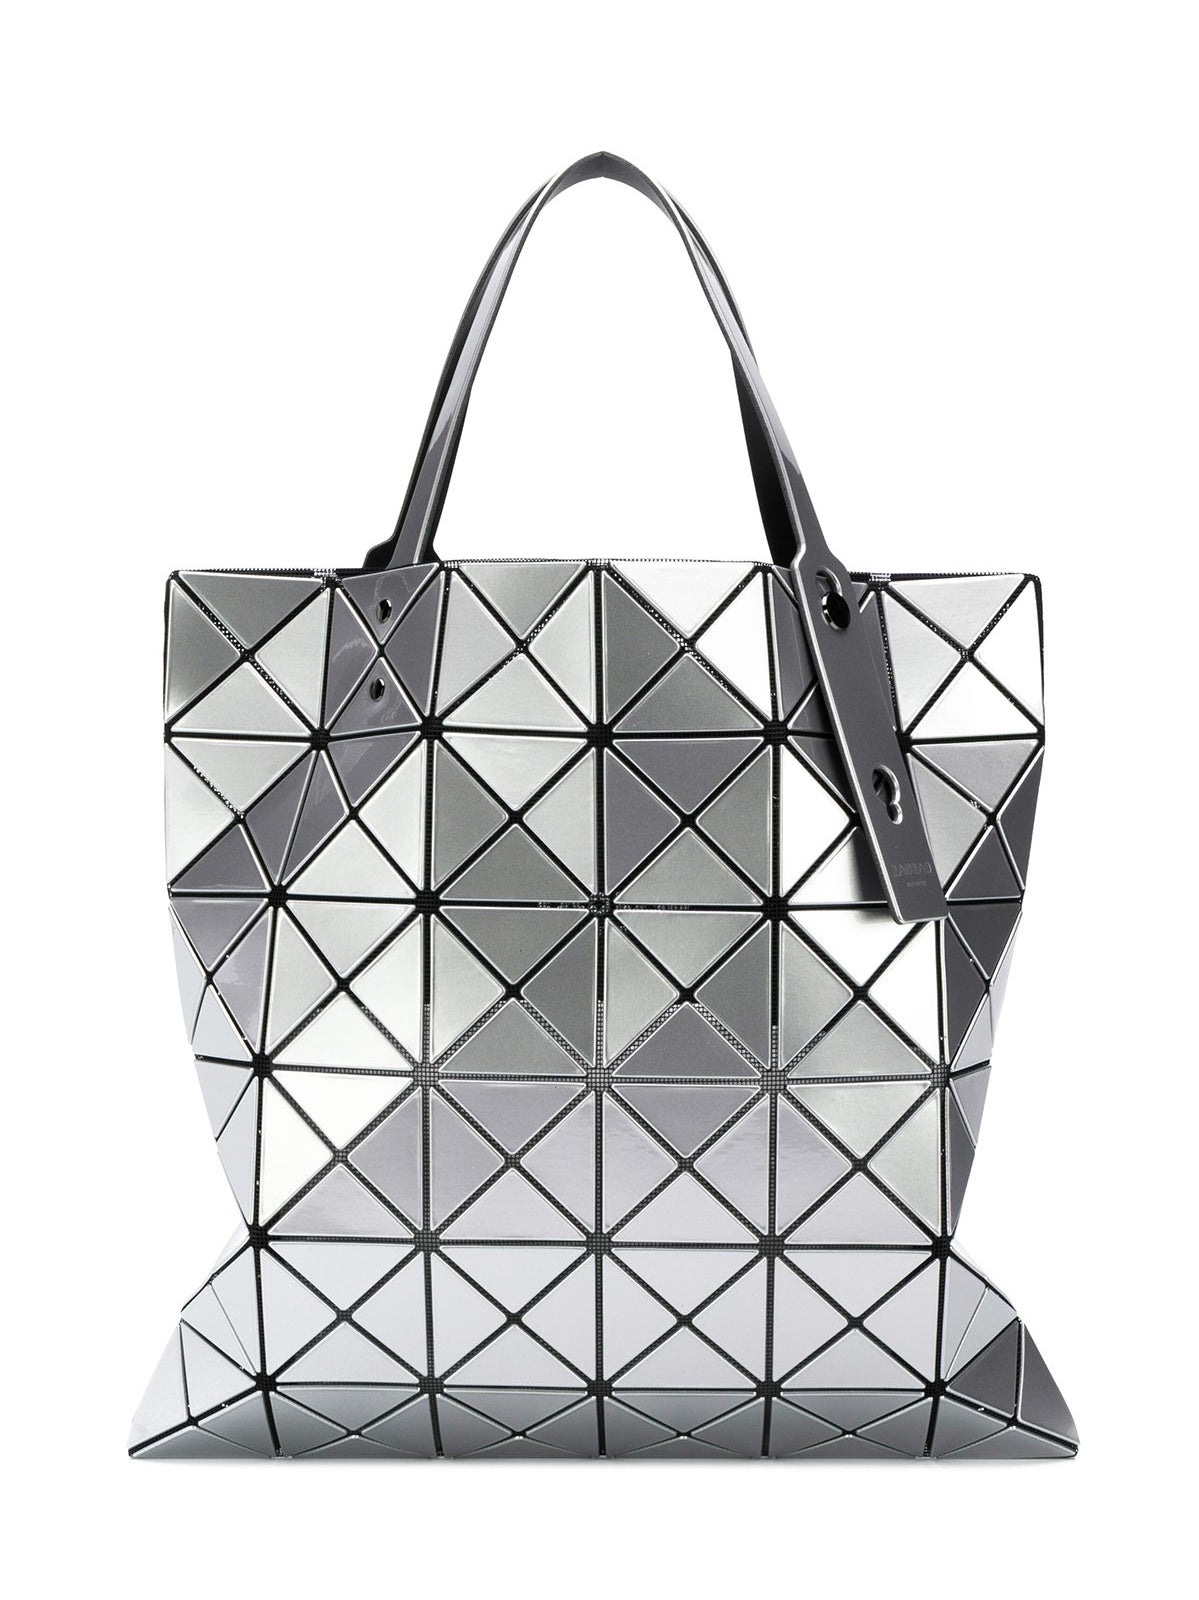 Lucent Tote Bag - Silver